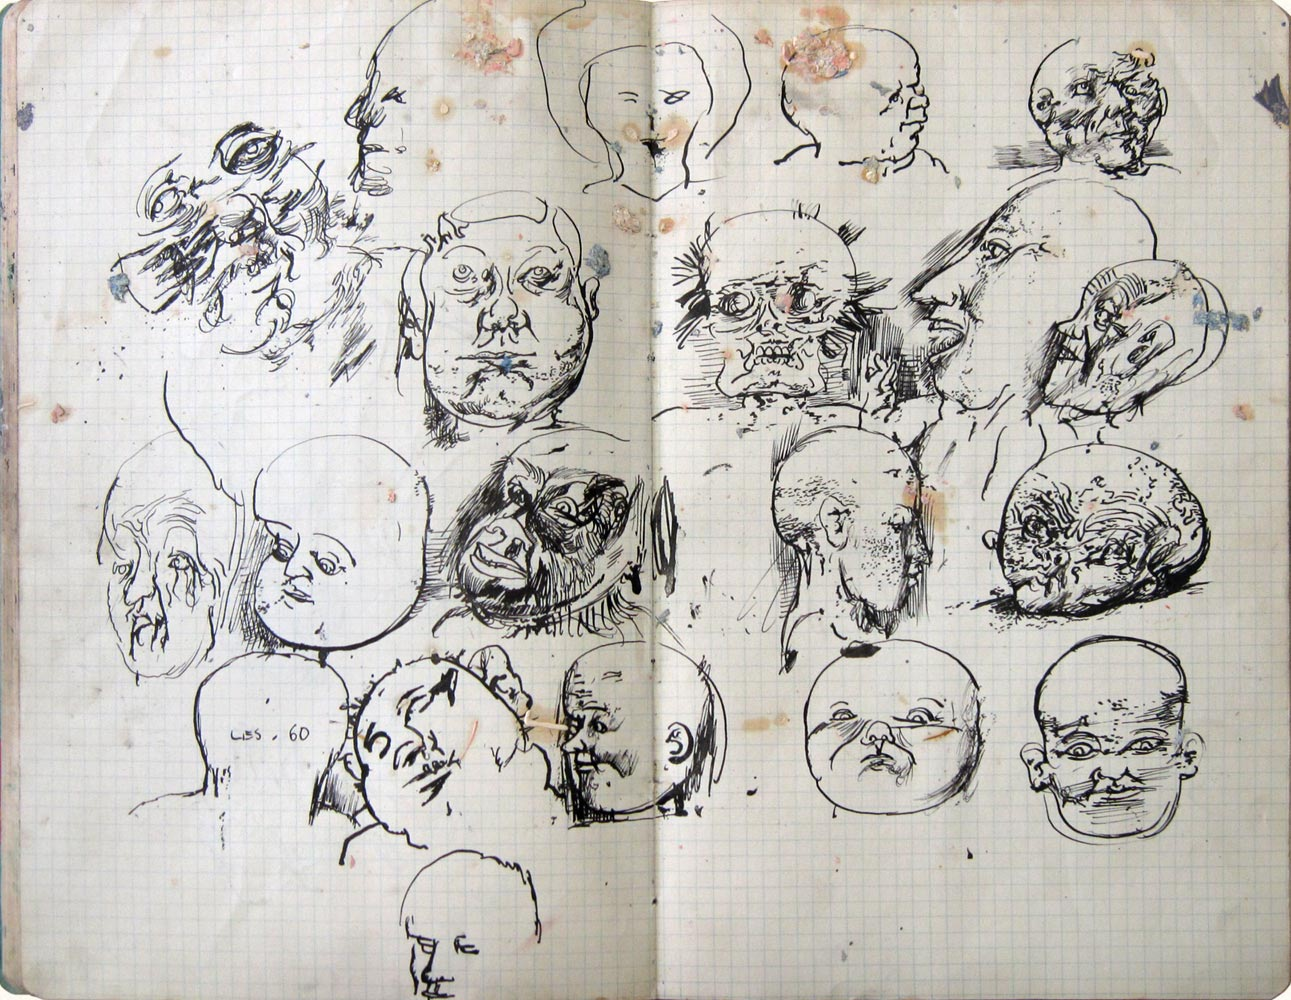 Sketchbook, 1959